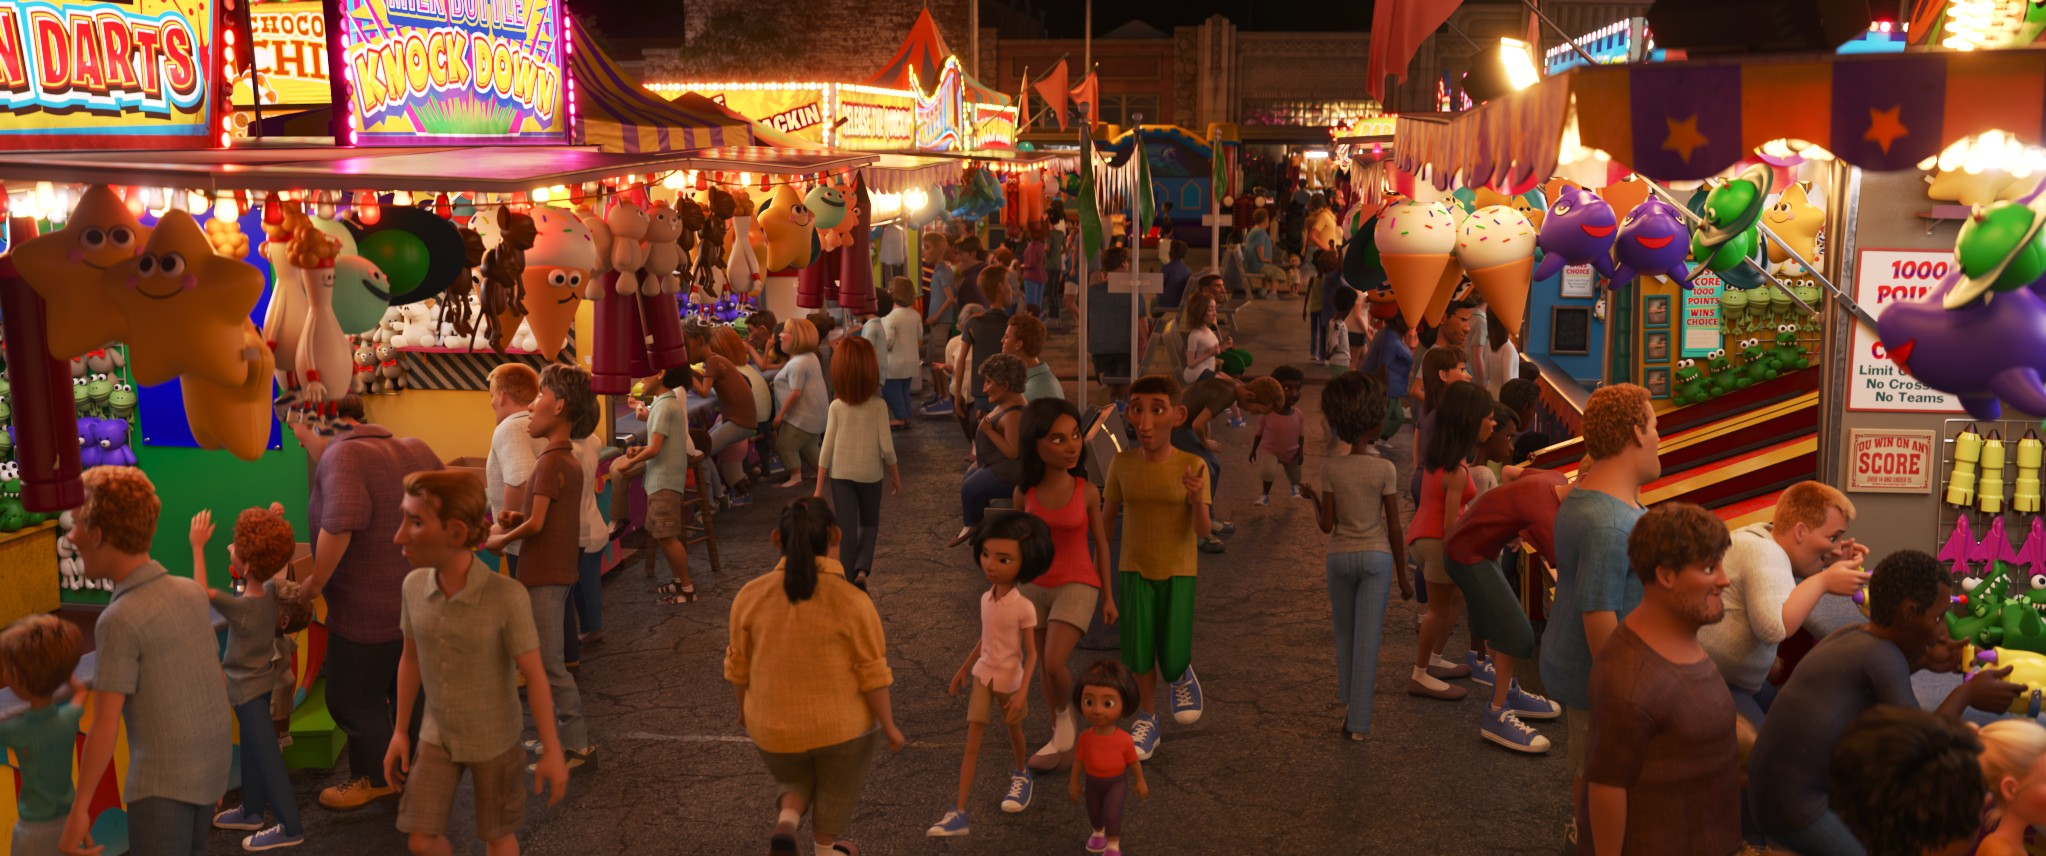 CGI scene of people enjoying a carnival at night